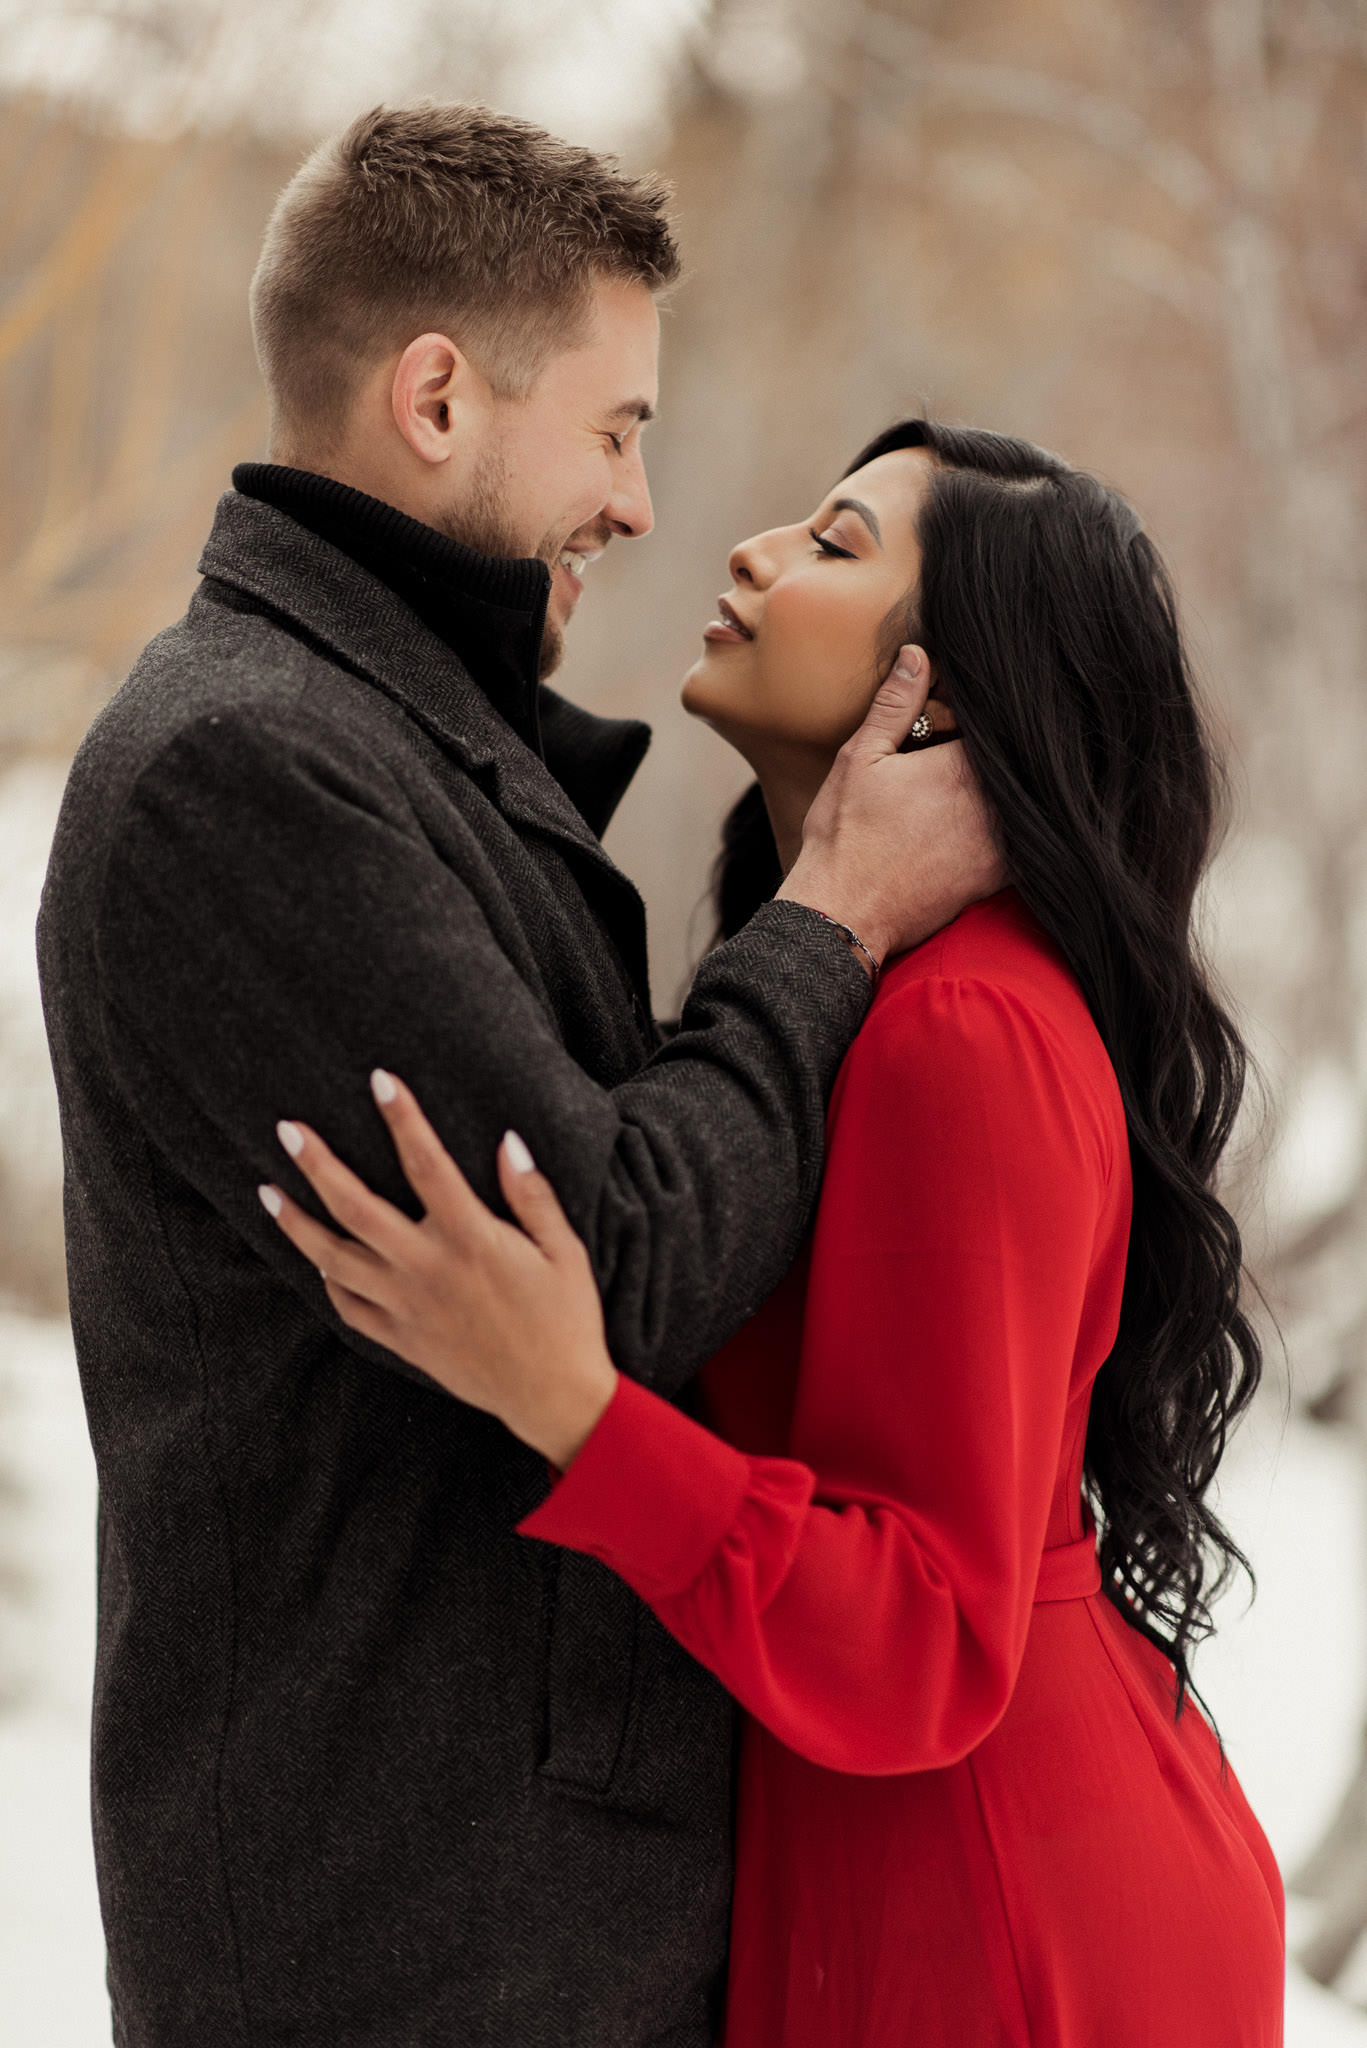 sandra-ryan-colorado-winter-snow-engagement-couples-valentines-red-houston-photographer-sm-4.jpg